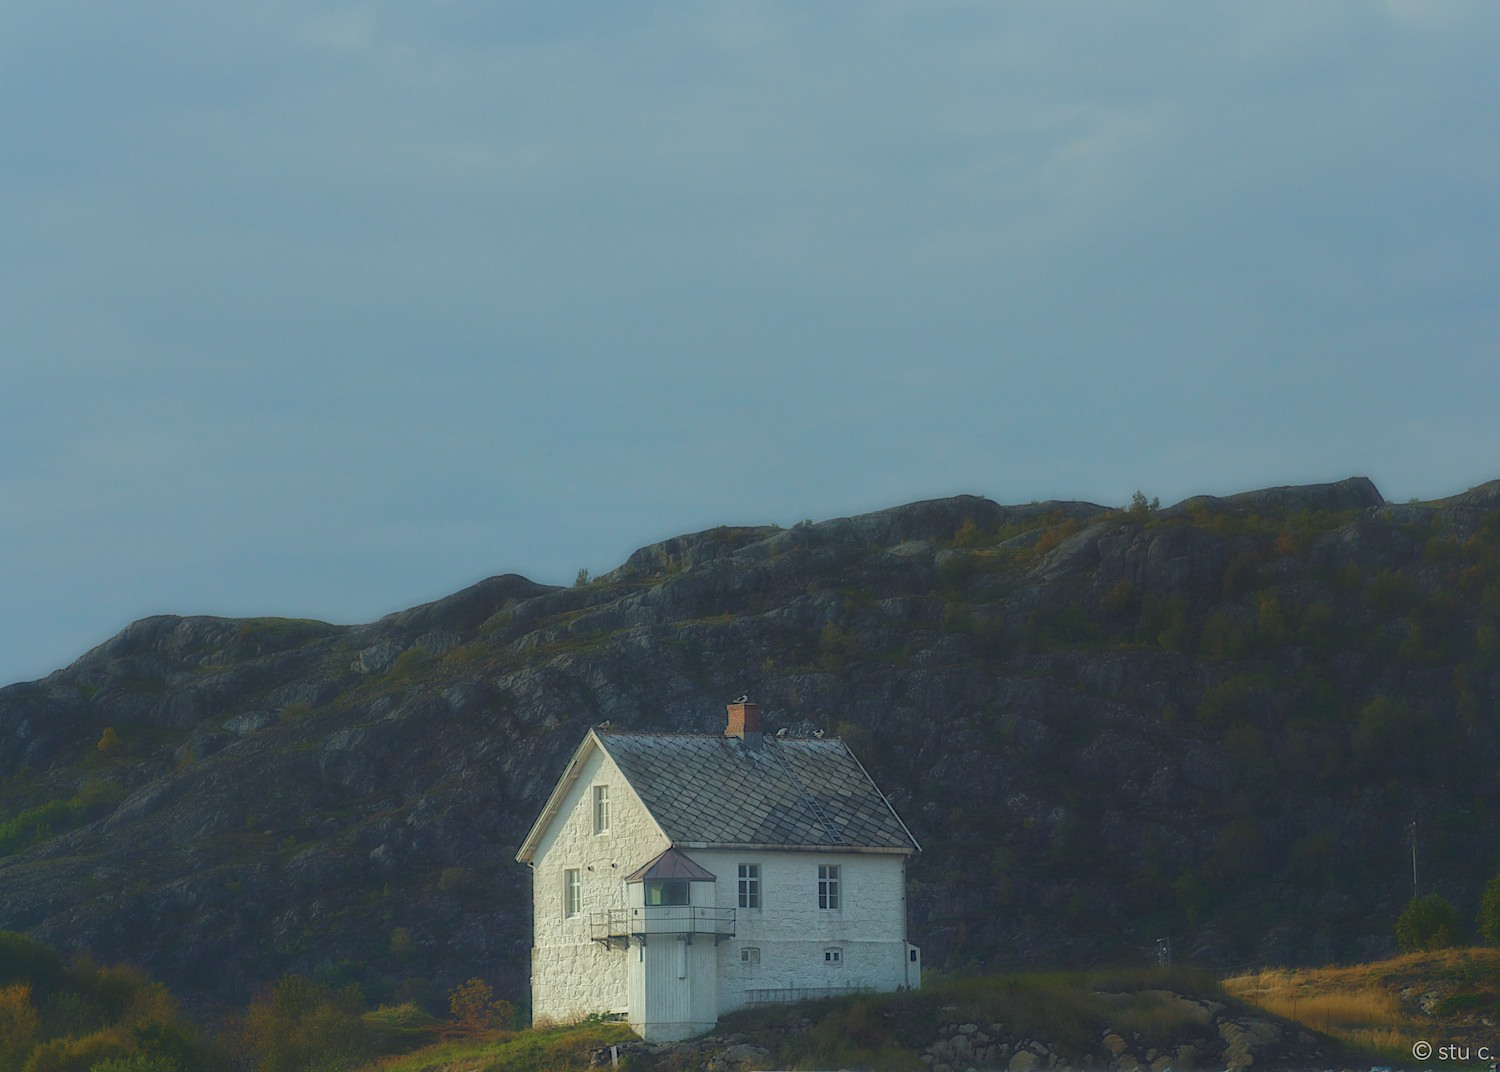 Aclassic and beautifully simpleNorwegian scene - this house on the rocky bluff overlooking the fjord.